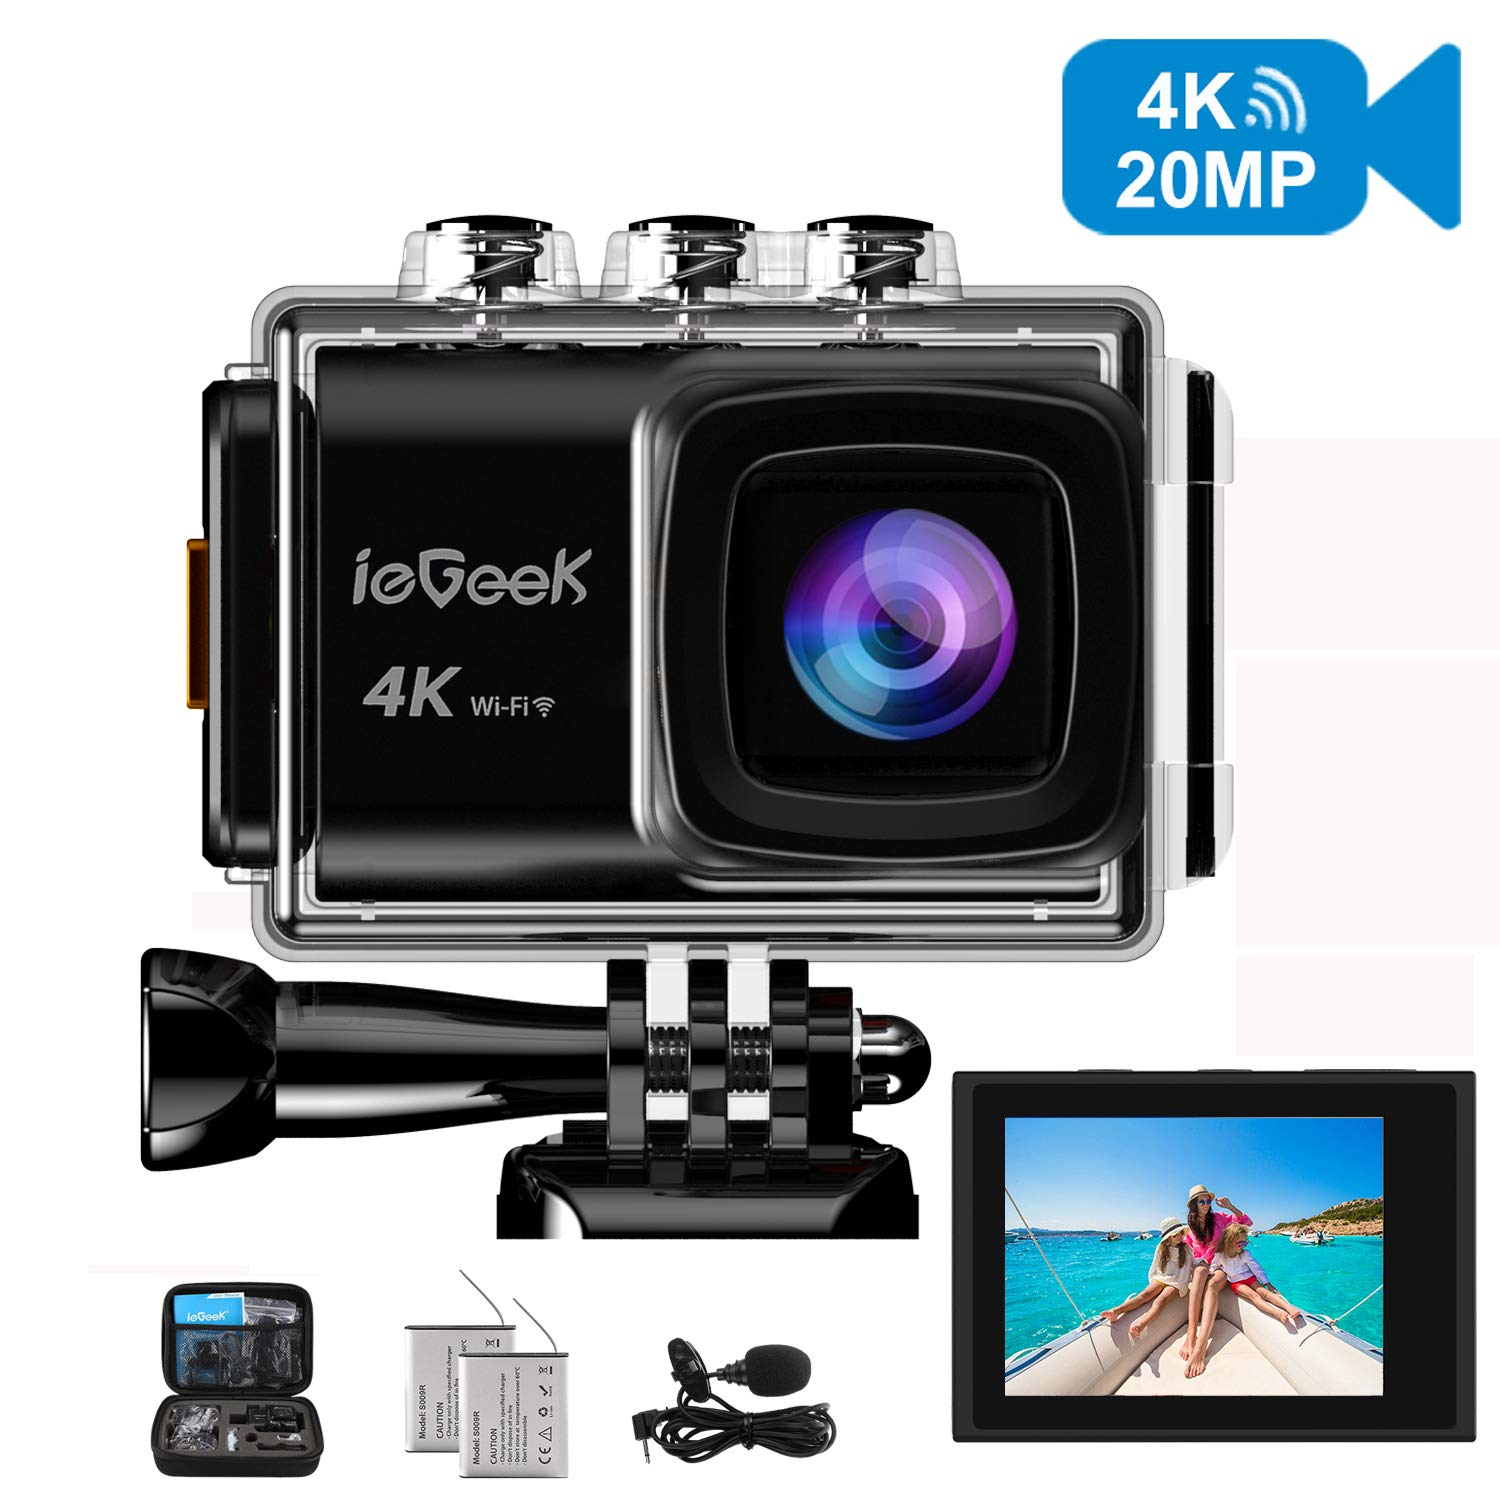 Action Camera, ieGeek 4K 20MP WiFi Waterproof Sports Cam Ultra HD Underwater Camera DV Camcorder EIS Image Stabilizer 170 Degree Wide-Angle with 2 Battery/External Microphone/Carry Case/Accessory Kit by ieGeek (Image #1)